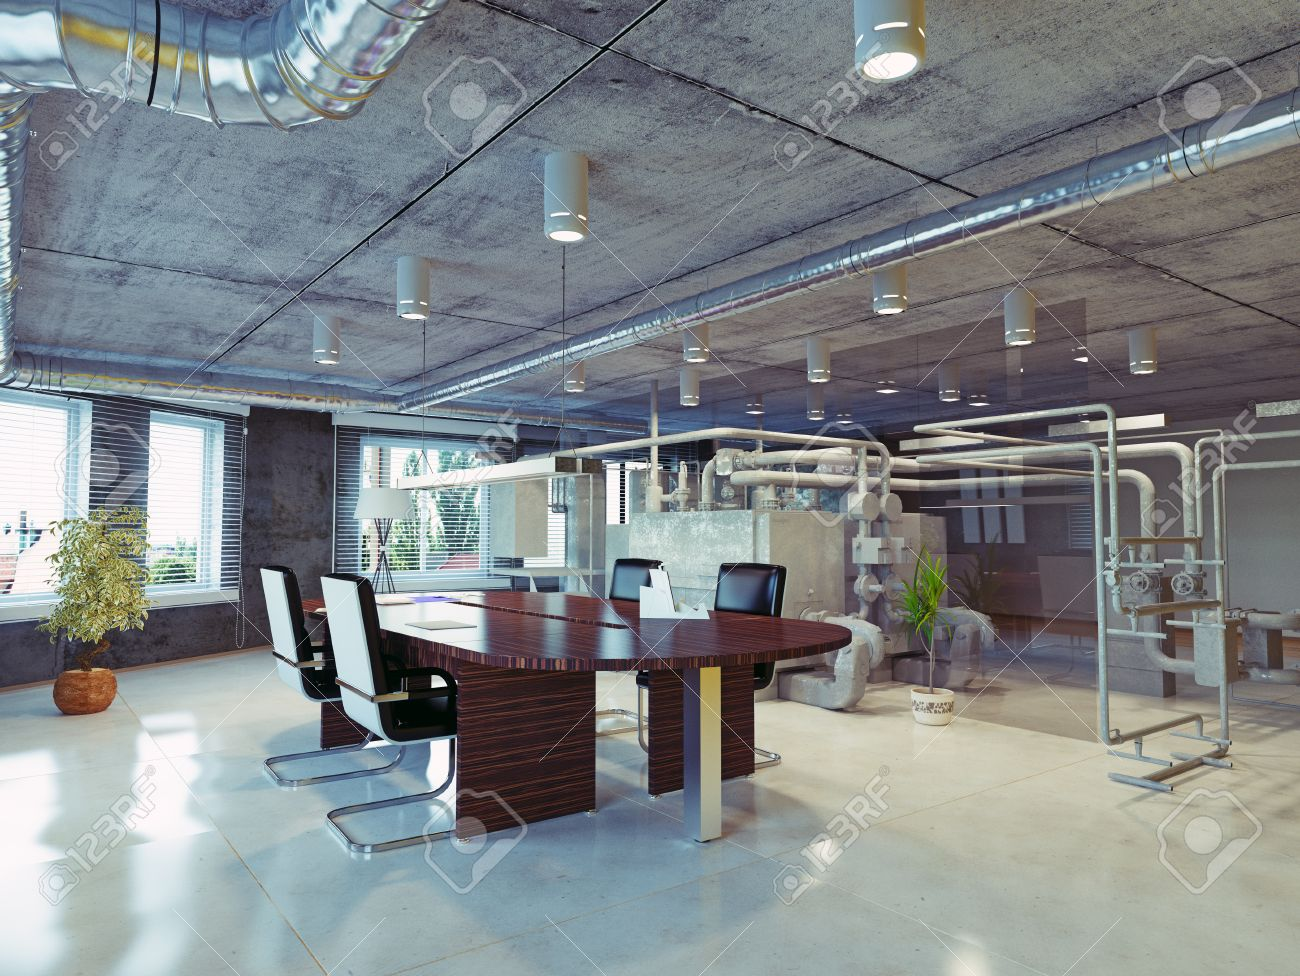 free office space. Modern Loft Office Interior. 3d Design Concept Free Space E